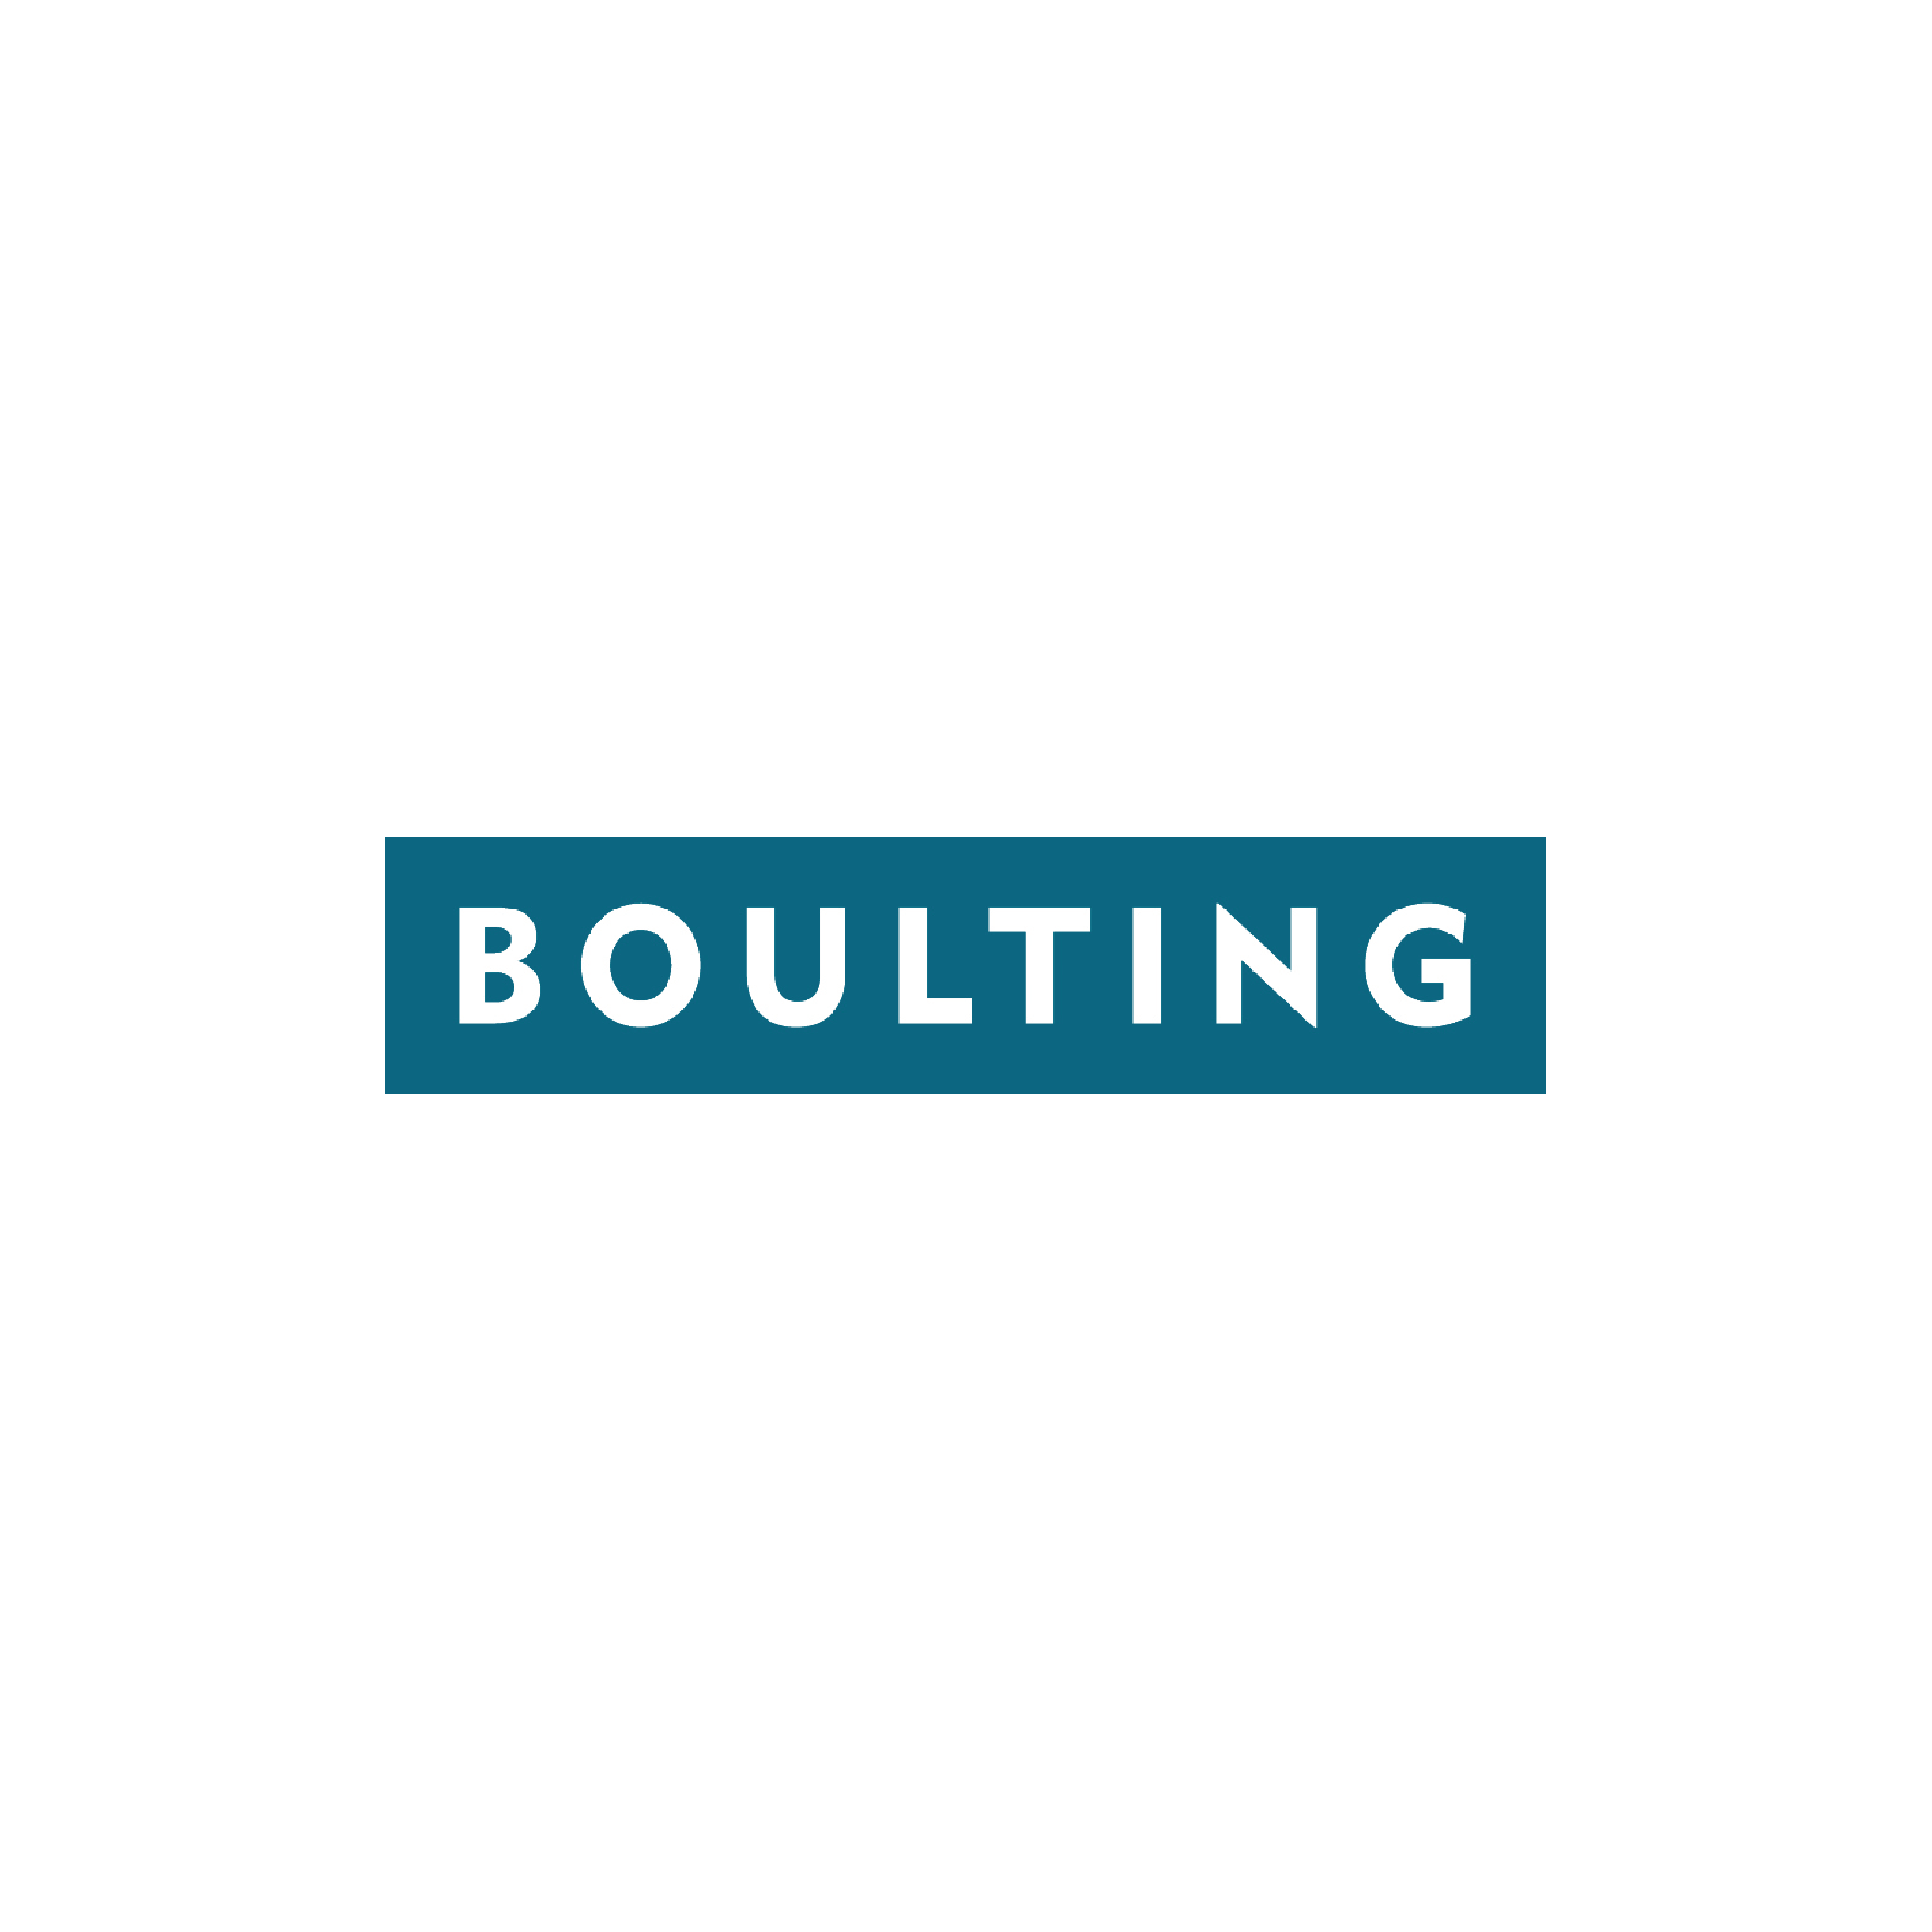 Boulting